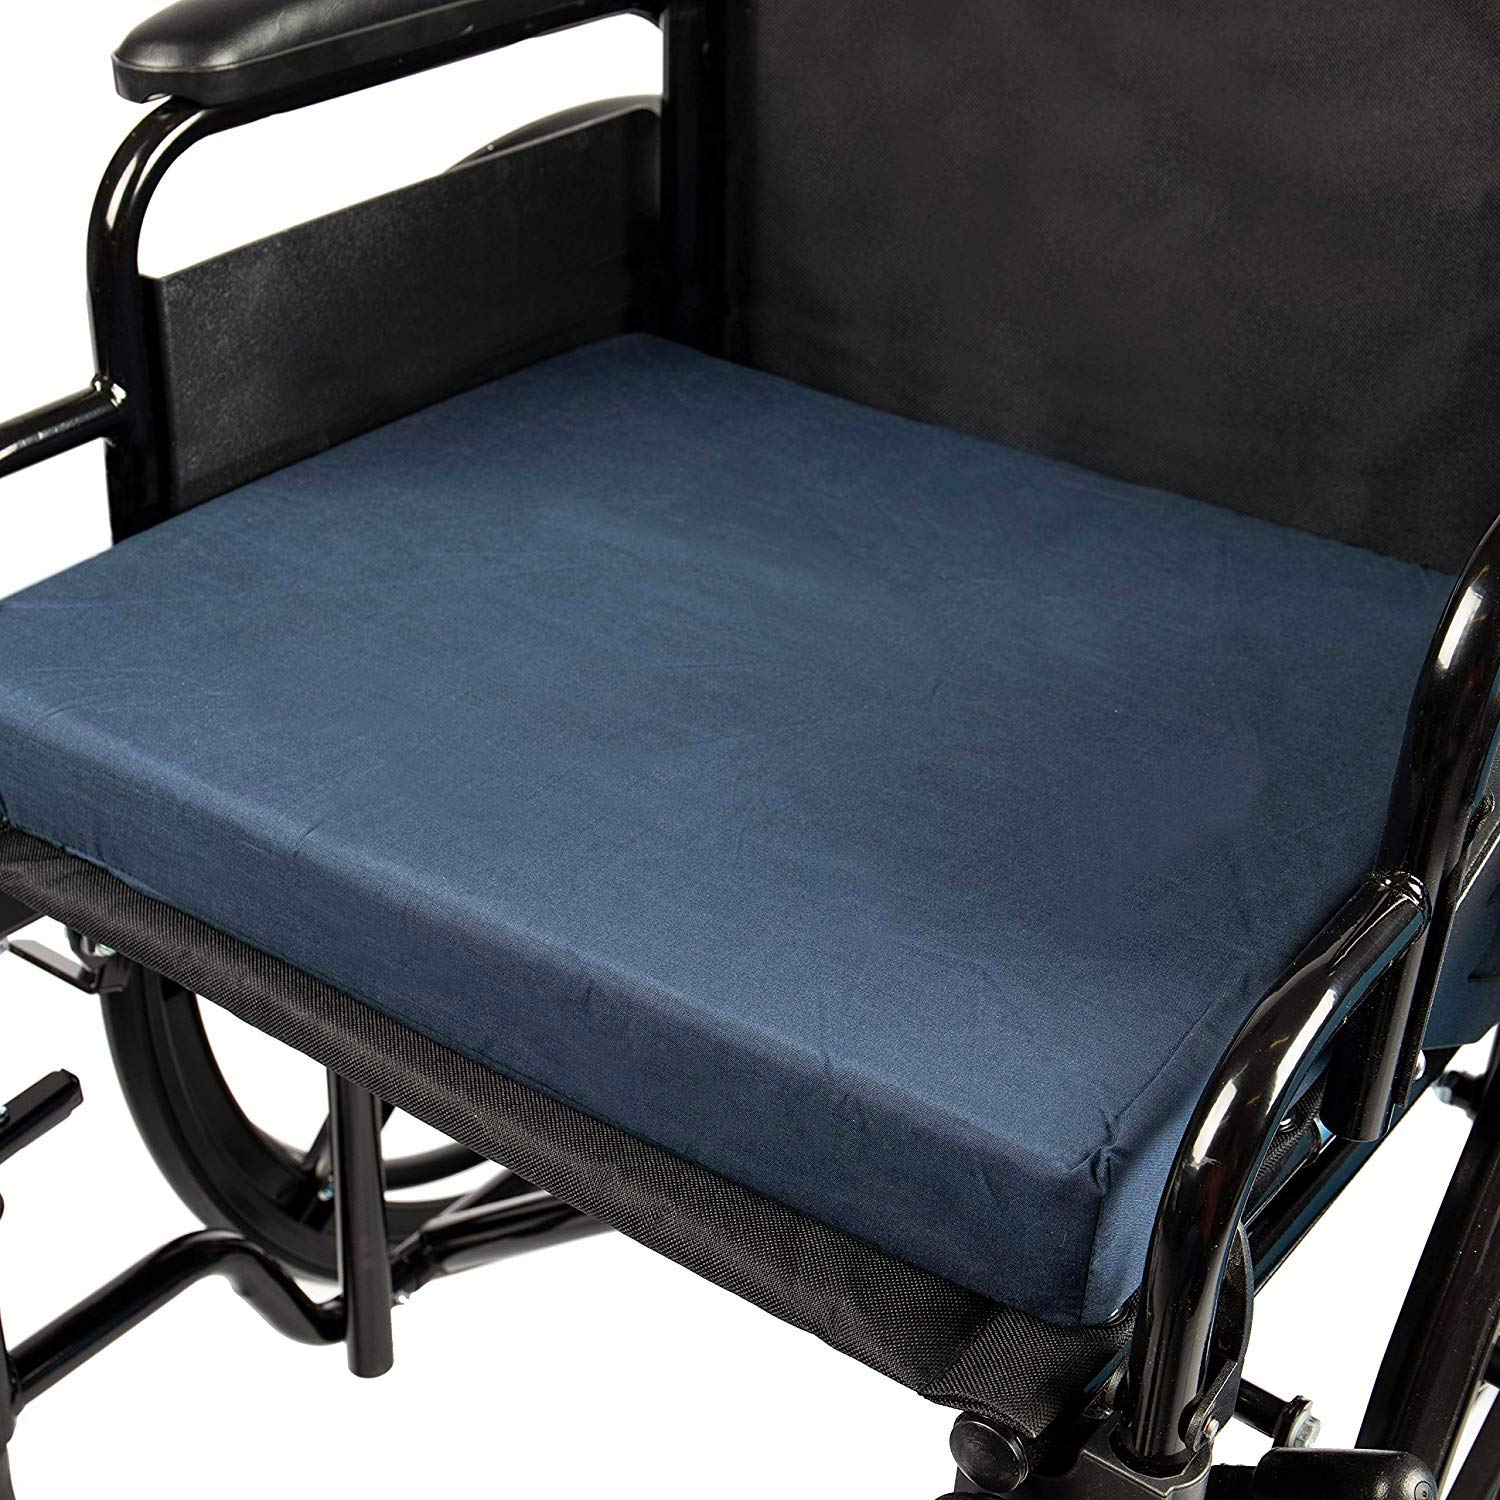 DMI Seat Cushion for Wheelchairs, Mobility Scooters, Office and Kitchen Chairs or Car Seats to Add Support and Comfort while Reducing Pressure and Stress on Back, 2 Inch thick, 16 x 18, Navy Blue